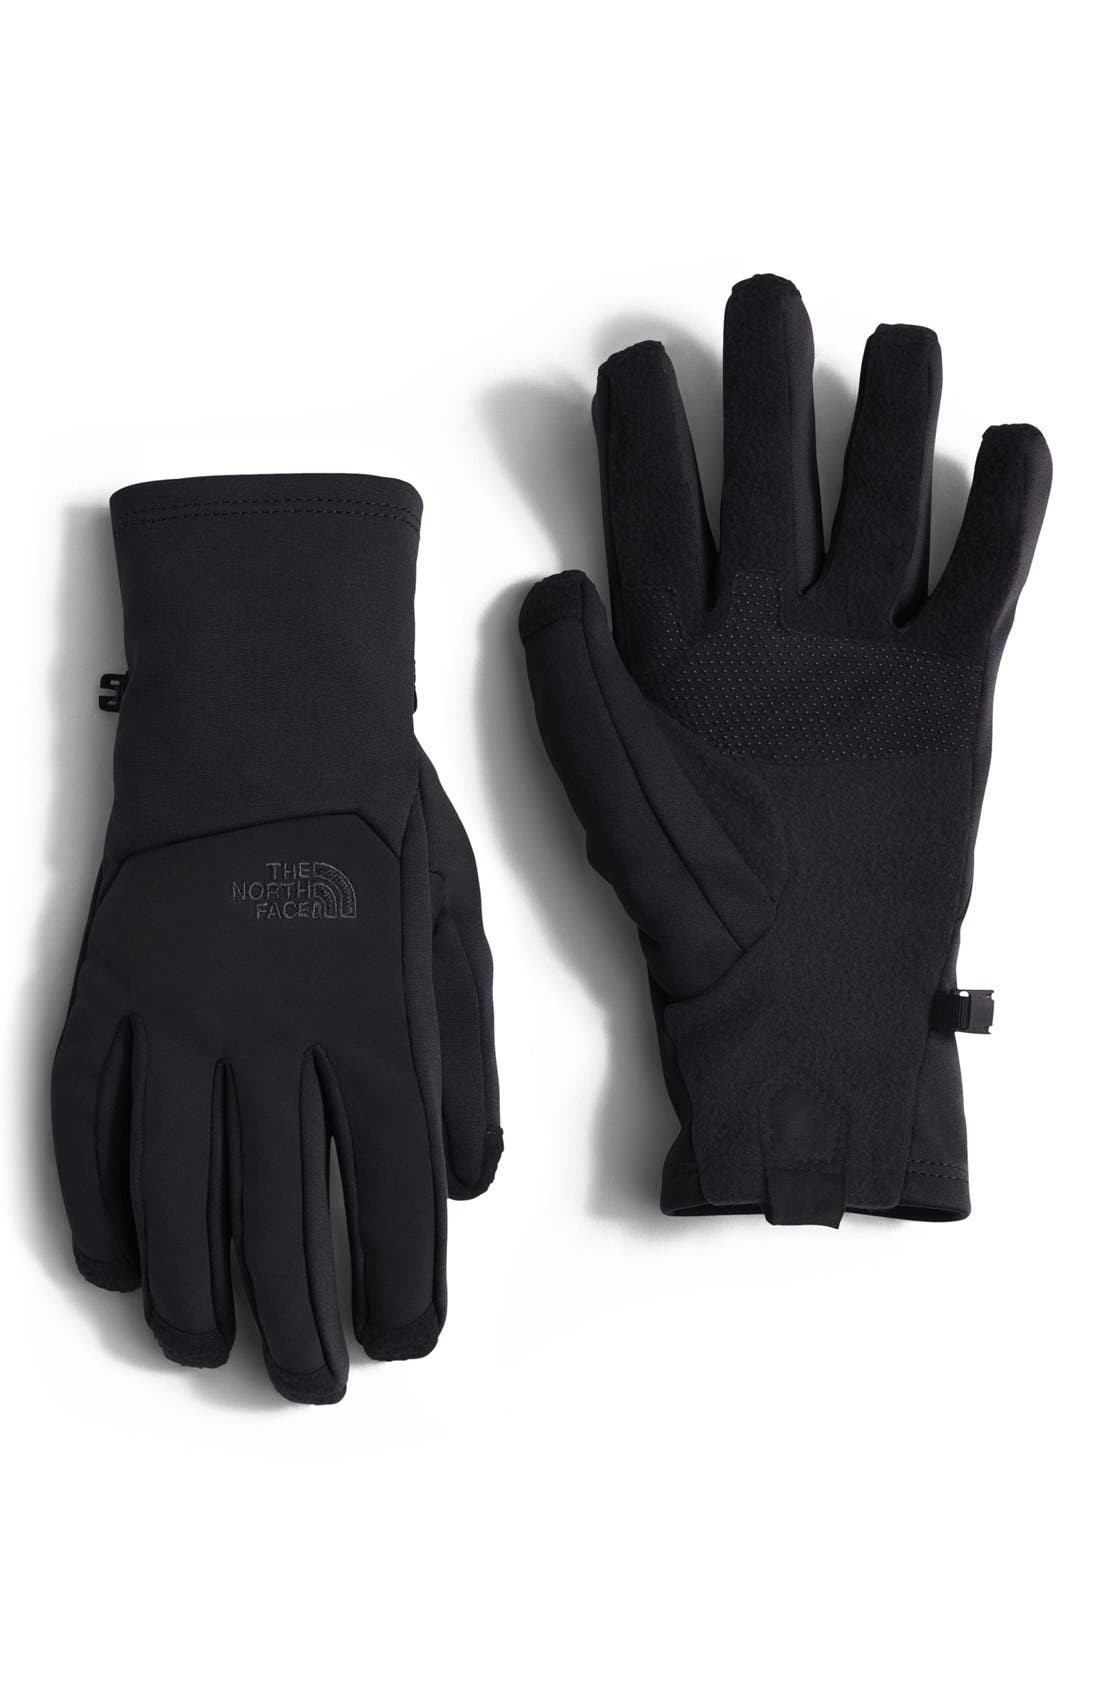 THE NORTH FACE CanyonWall E-Tip Tech Gloves